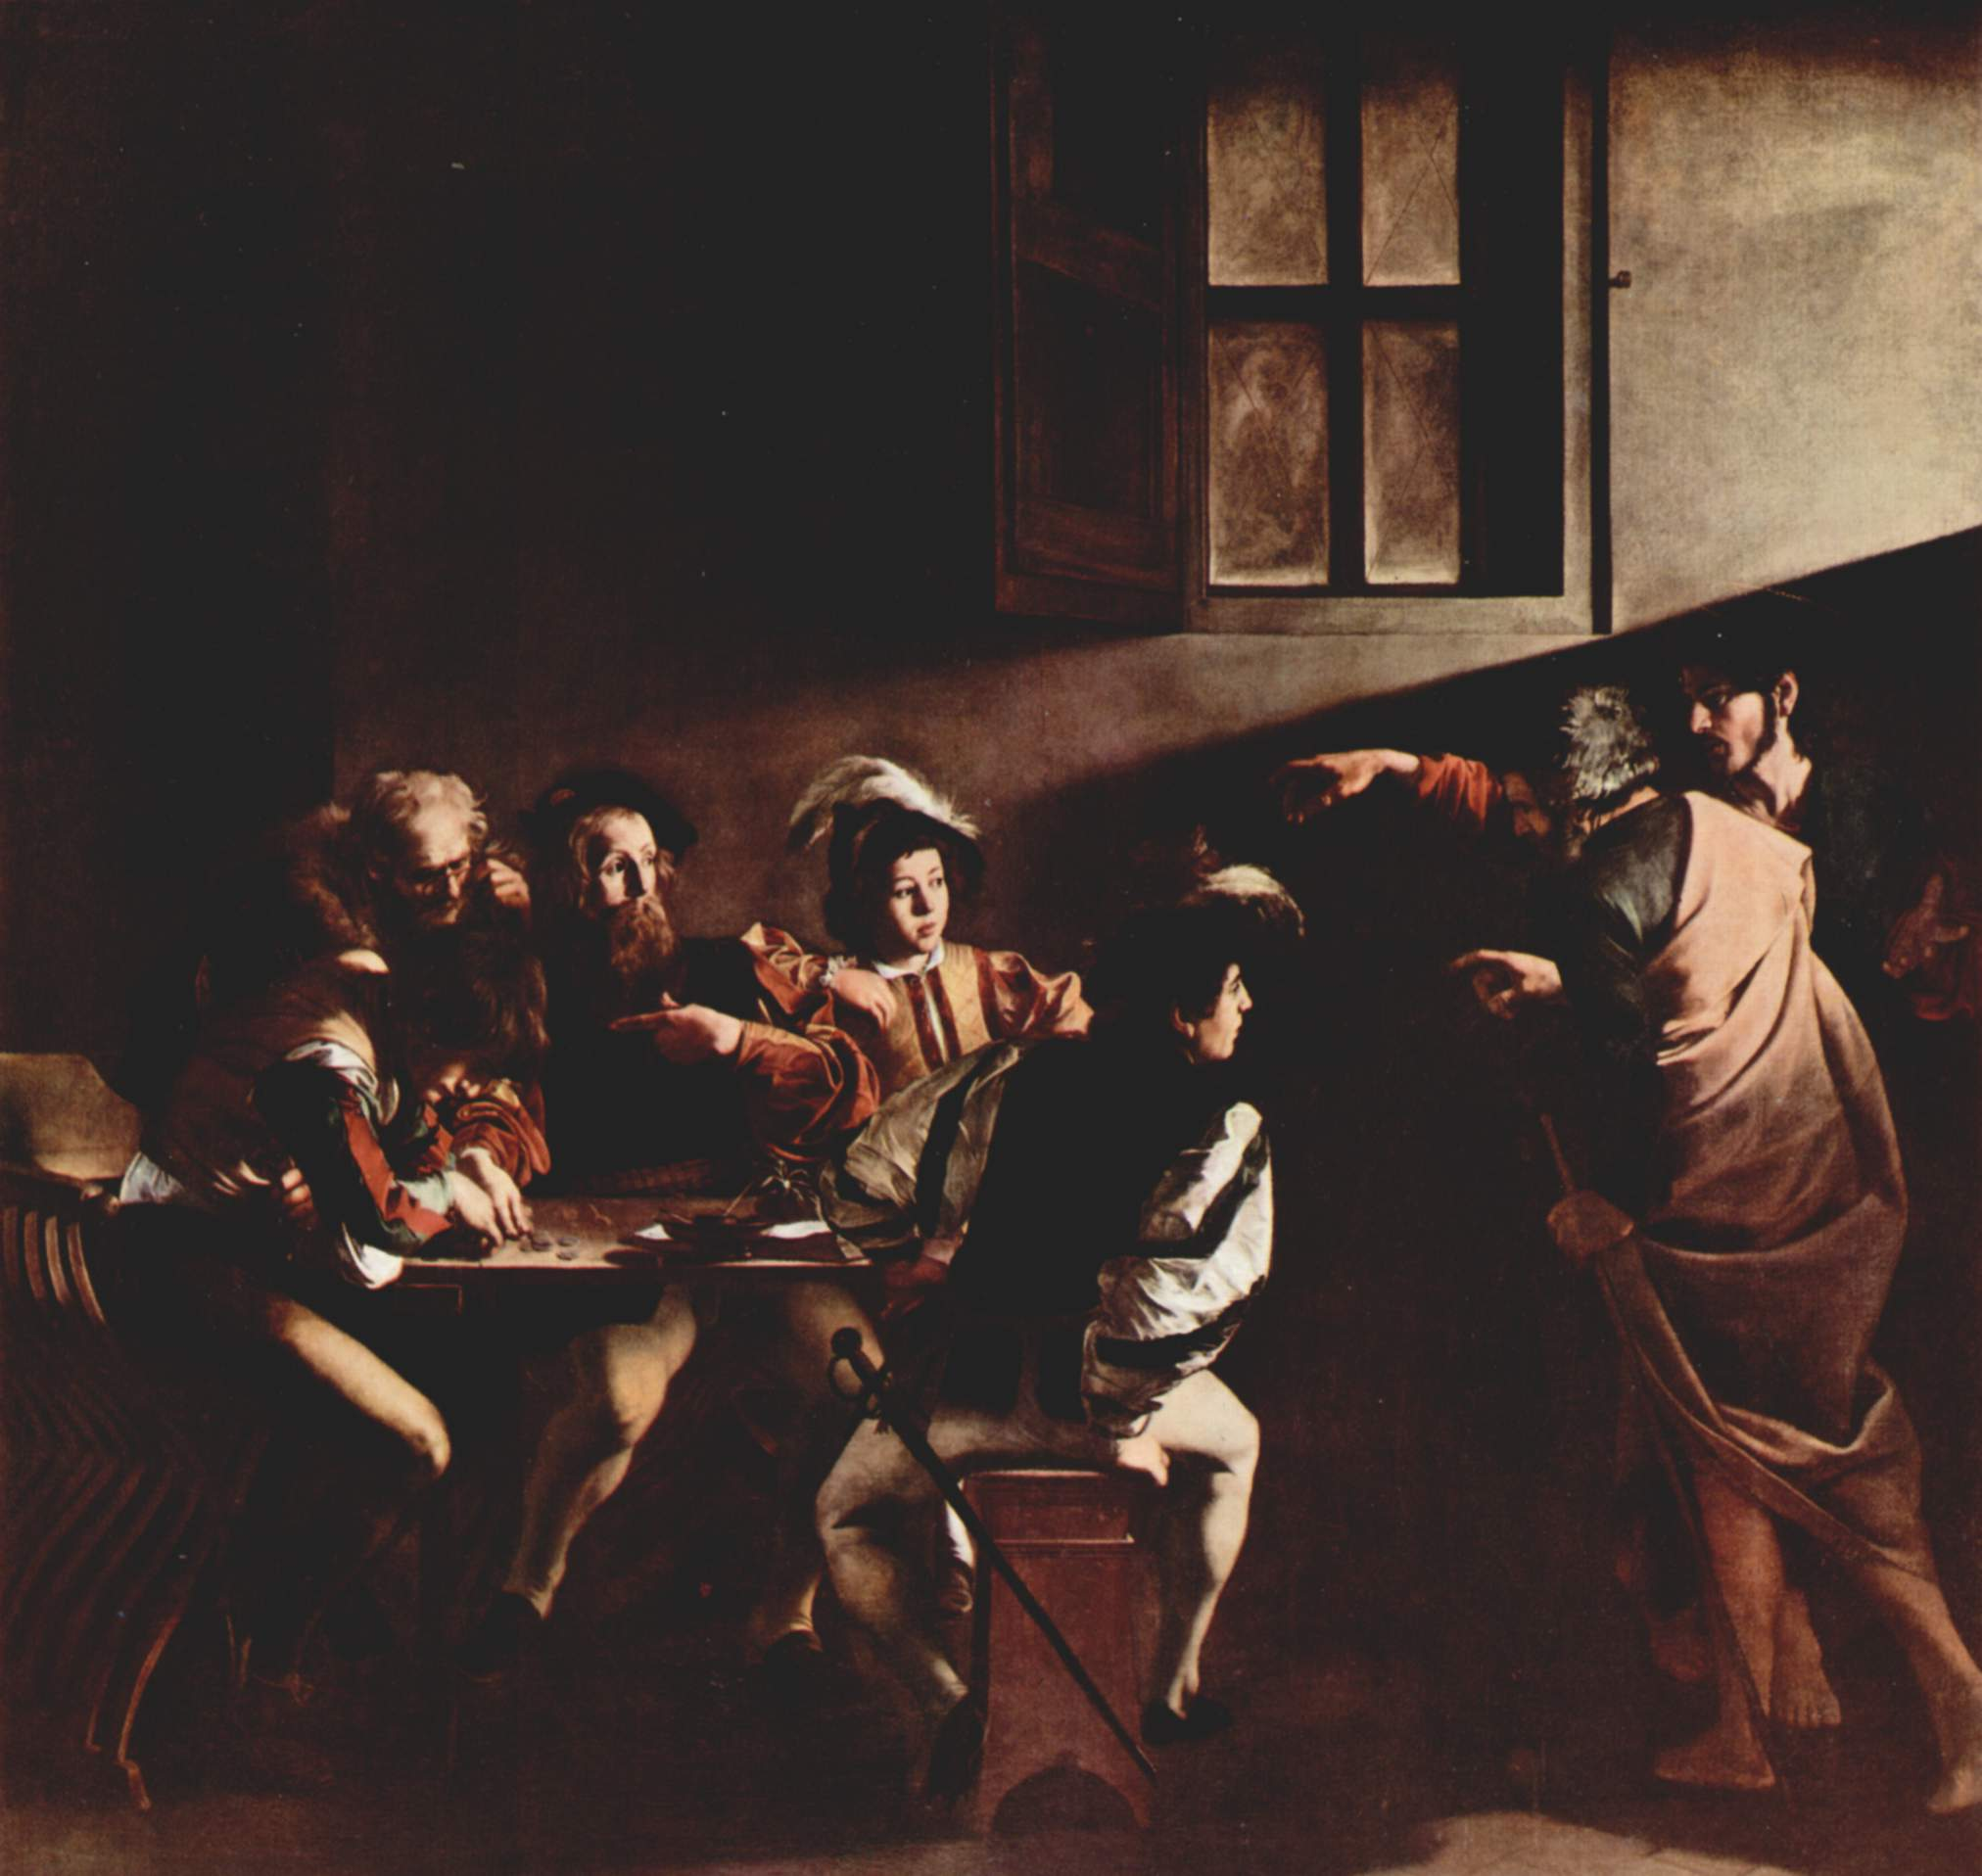 http://upload.wikimedia.org/wikipedia/commons/2/27/Michelangelo_Caravaggio_040.jpg